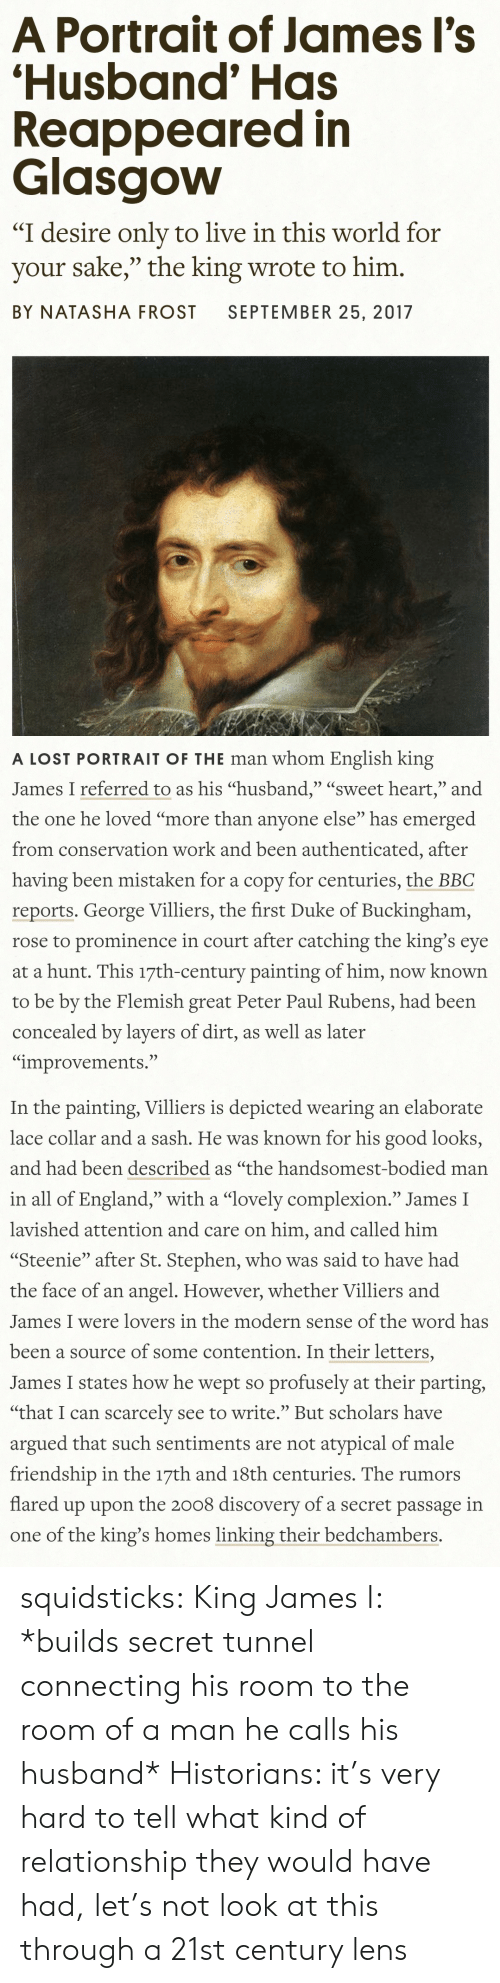 """England, Stephen, and Target: A Portrait of James Il's  'Husband' Has  Reappeared in  Glasgovw  """"I desire only to live in this world for  your sake,"""" the king wrote to him.  BY NATASHA FROST SEPTEMBER 25, 2017   A LOST PORTRAIT OF THE man whom English king  James I referred to as his """"husband,"""" """"sweet heart,"""" and  the one he loved """"more than anvone else"""" has emerged  from conservation work and been authenticated, after  having been mistaken for a copy for centuries, the BBC  reports. George Villiers, the first Duke of Buckingham,  rose to prominence in court after catching the king's eye  at a hunt. This 17th-century painting of him, now known  to be by the Flemish great Peter Paul Rubens, had been  concealed by layers of dirt, as well as later  """"improvements.""""   In the painting, Villiers is depicted wearing an elaborate  lace collar and a sash. He was known for his good looks,  and had been described as """"the handsomest-bodied man  in all of England,"""" with a """"lovely complexion."""" James I  lavished attention and care on him, and called him  """"Steenie"""" after St. Stephen, who was said to have had  the face of an angel. However, whether Villiers and  James I were lovers in the modern sense of the word has  been a source of some contention. In their letters,  James I states how he wept so profusely at their parting  """"that I can scarcelv see to write. But scholars have  argued that such sentiments are not atypical of male  friendship in the 17th and 18th centuries. The rumors  flared up upon the 2008 discoverv of a secret passage in  one of the king's homes linking their bedchambers. squidsticks: King James I: *builds secret tunnel connecting his room to the room of a man he calls his husband*  Historians: it's very hard to tell what kind of relationship they would have had, let's not look at this through a 21st century lens"""